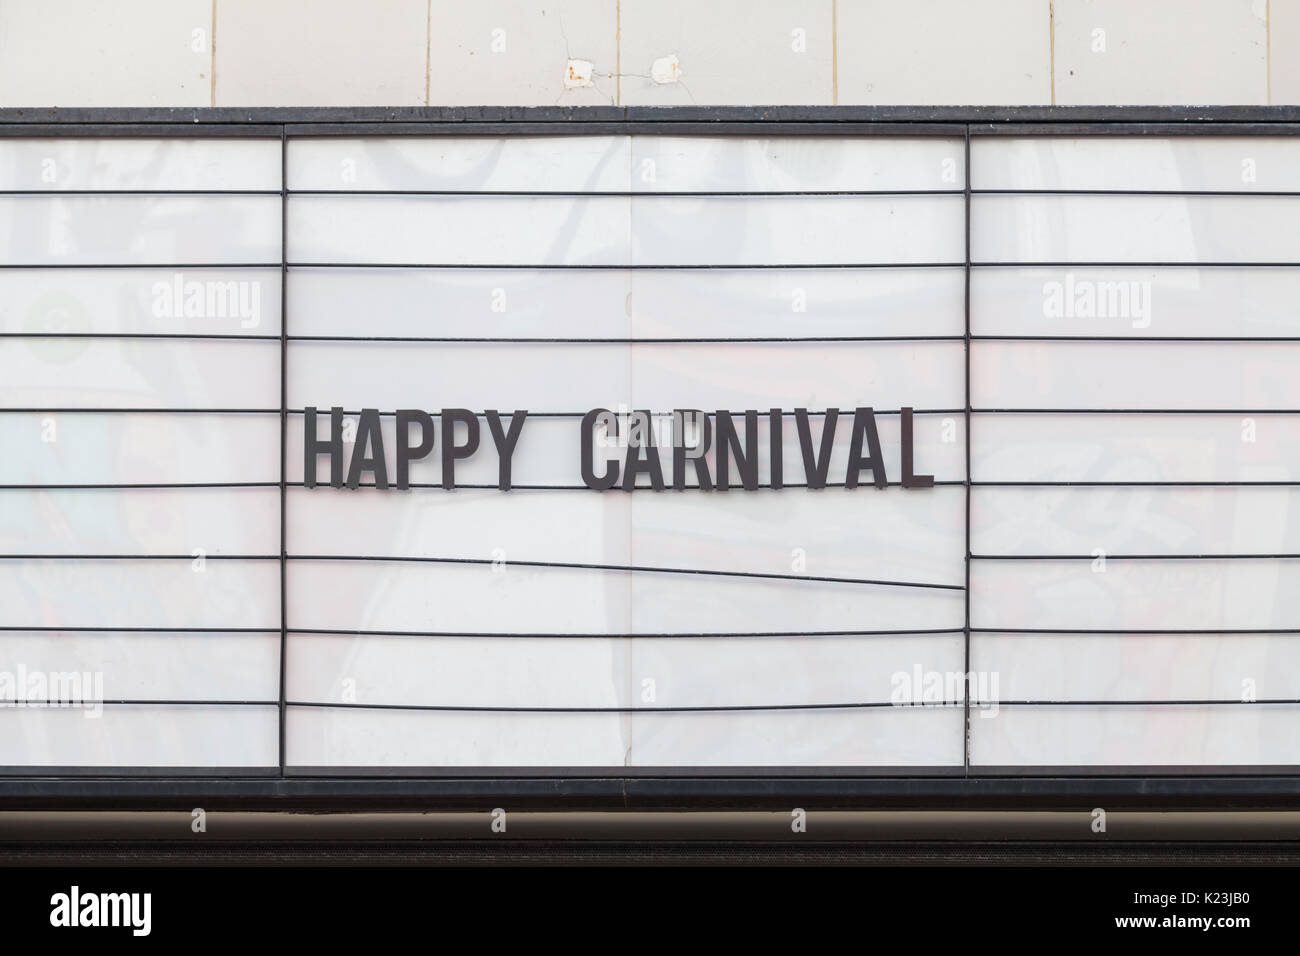 Notting Hill, London, UK, 28th August 2017. Happy Carnival sigh outside the 'Electric' Cinema.Notting Hill Carnival is Europe's biggest street festival celebrating  London's Caribbean community and multicultural heritage since 1964 in Notting Hill, Ladbroke Grove and Westbourne Park. Credit: Imageplotter News and Sports/Alamy Live News - Stock Image